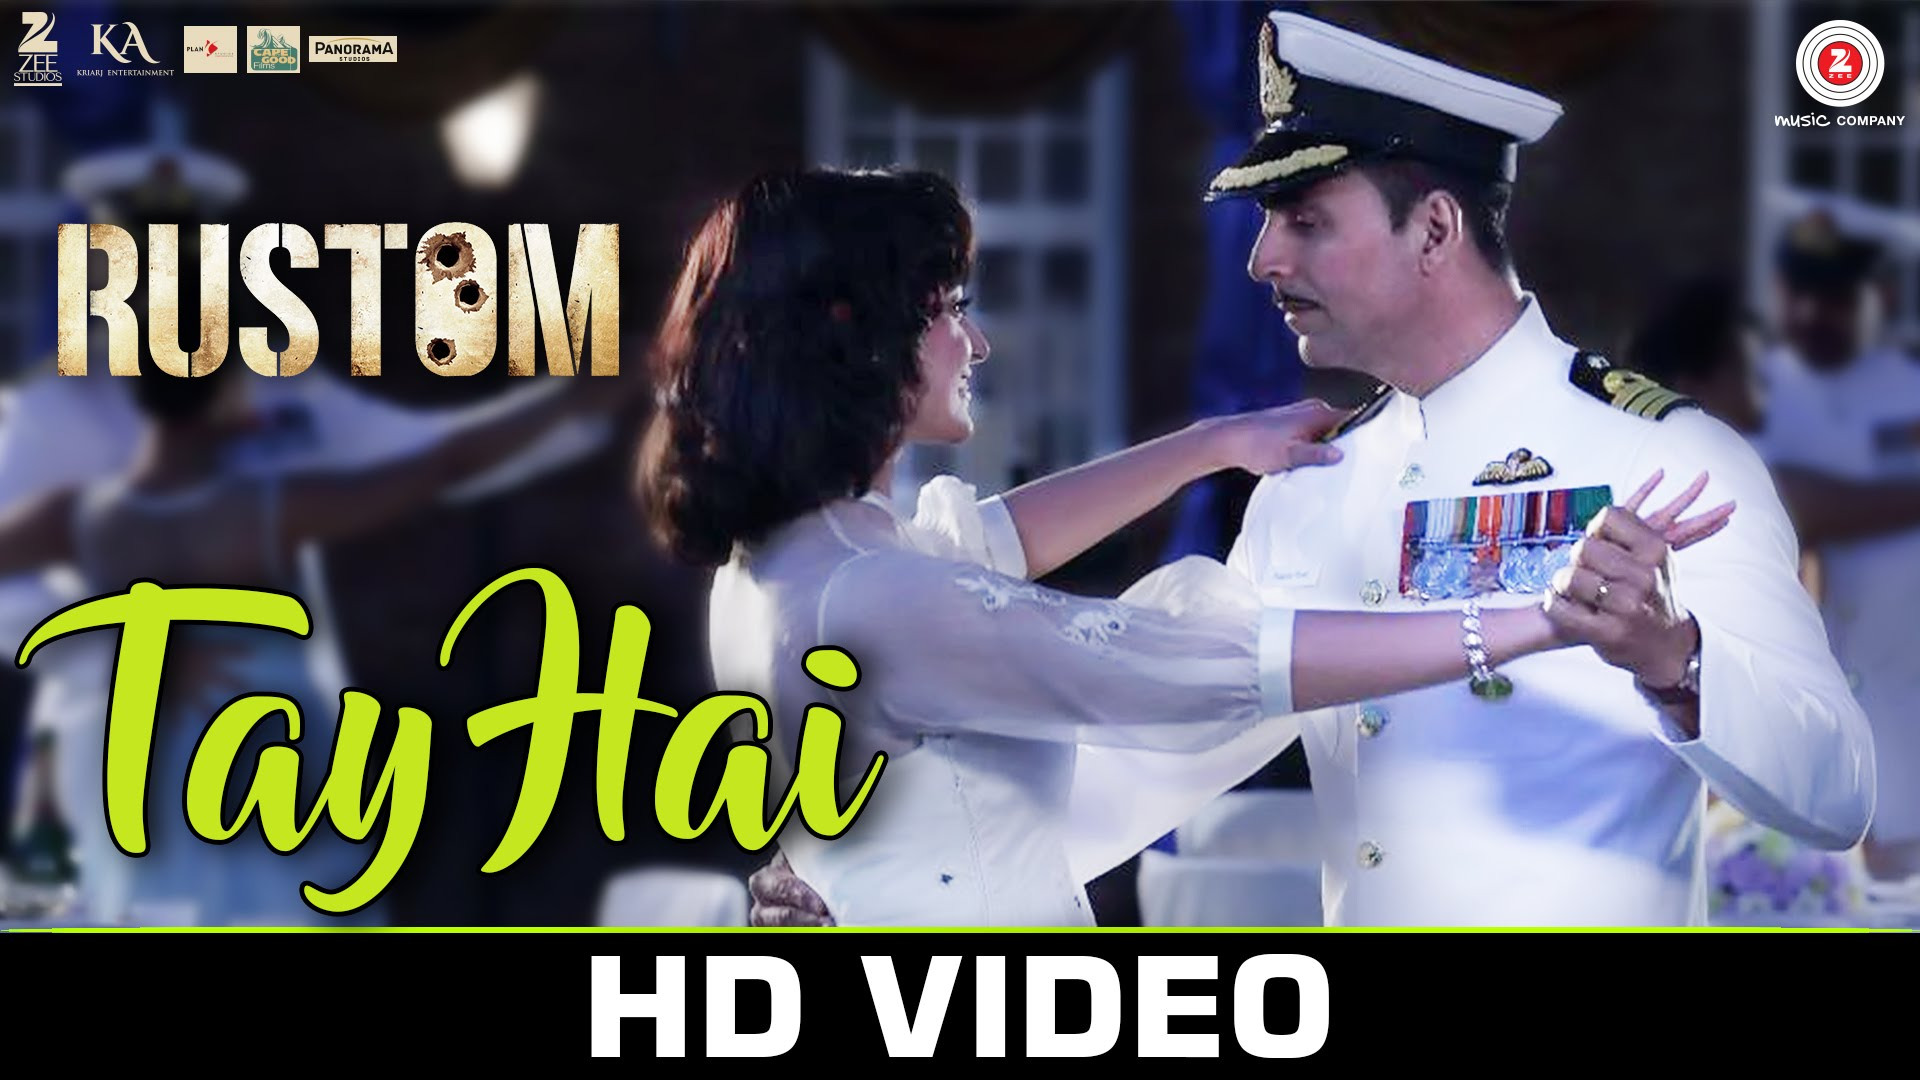 Another amazing love ballad 'Tay Hai' from Rustom in Ankit Tiwari's voice